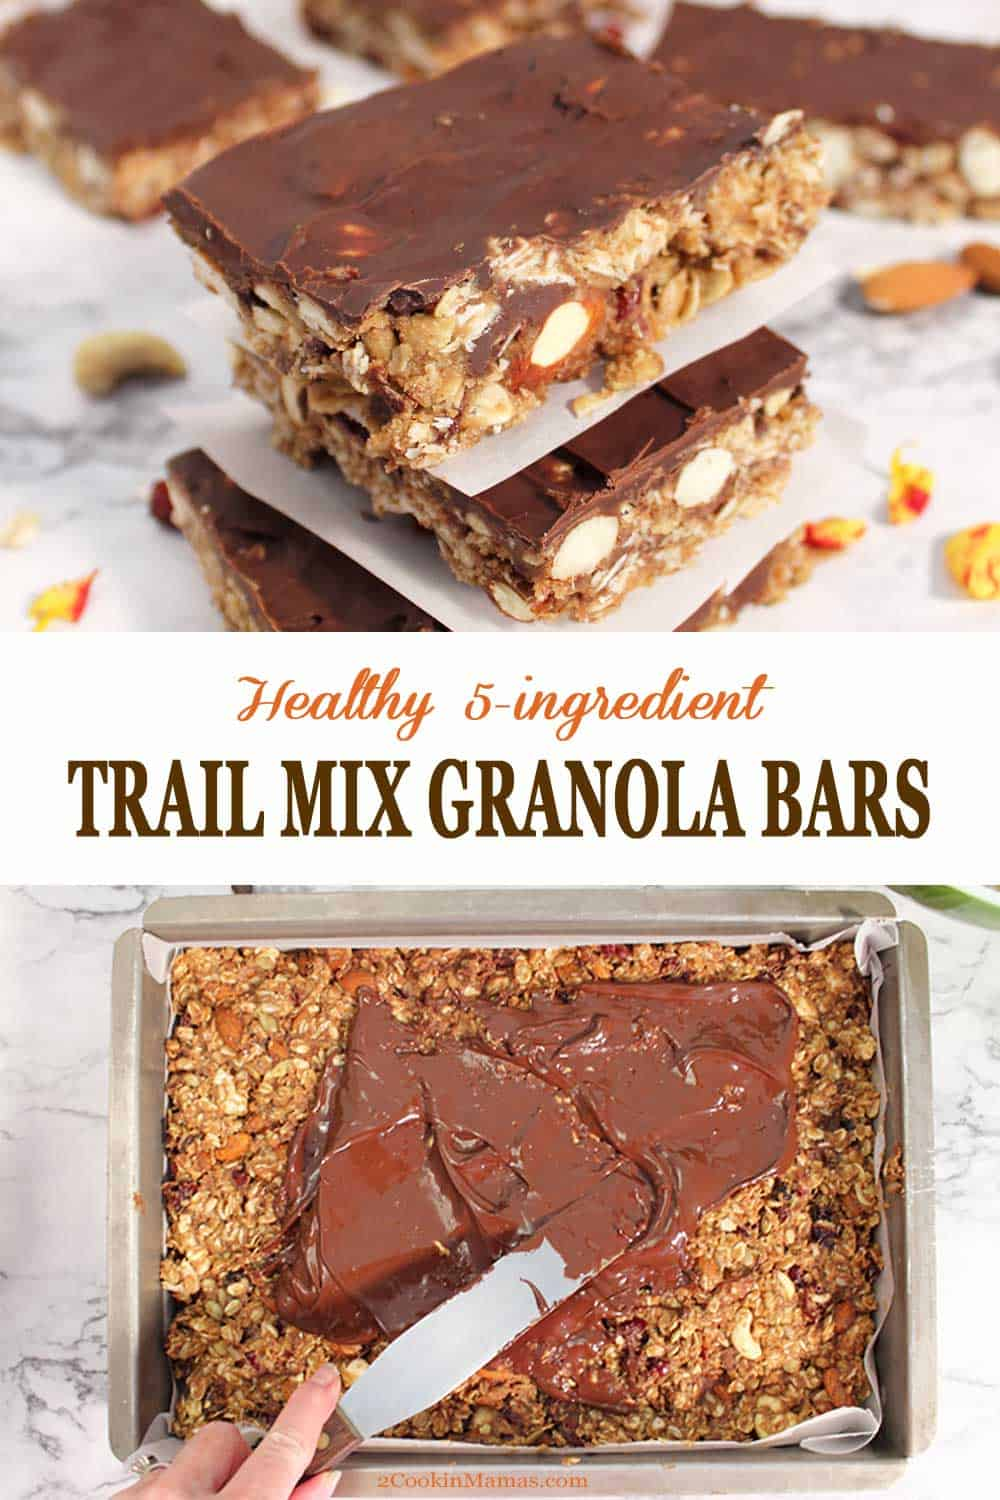 Healthy Trail Mix Granola Bars | 2 Cookin Mamas Trail Mix Granola Bars are a delicious, homemade & healthy snack. Sweetened with honey, flavored with almond butter and maple syrup and packed with a trail mix full of nuts, seeds & dried fruit. Finish with a topping of chocolate for an irresistible snack. #snack #granolabars #healthy #easy #recipe #glutenfree #lowcarb #almondbutter #nobake #homemade #chocolate #oats #glutenfree